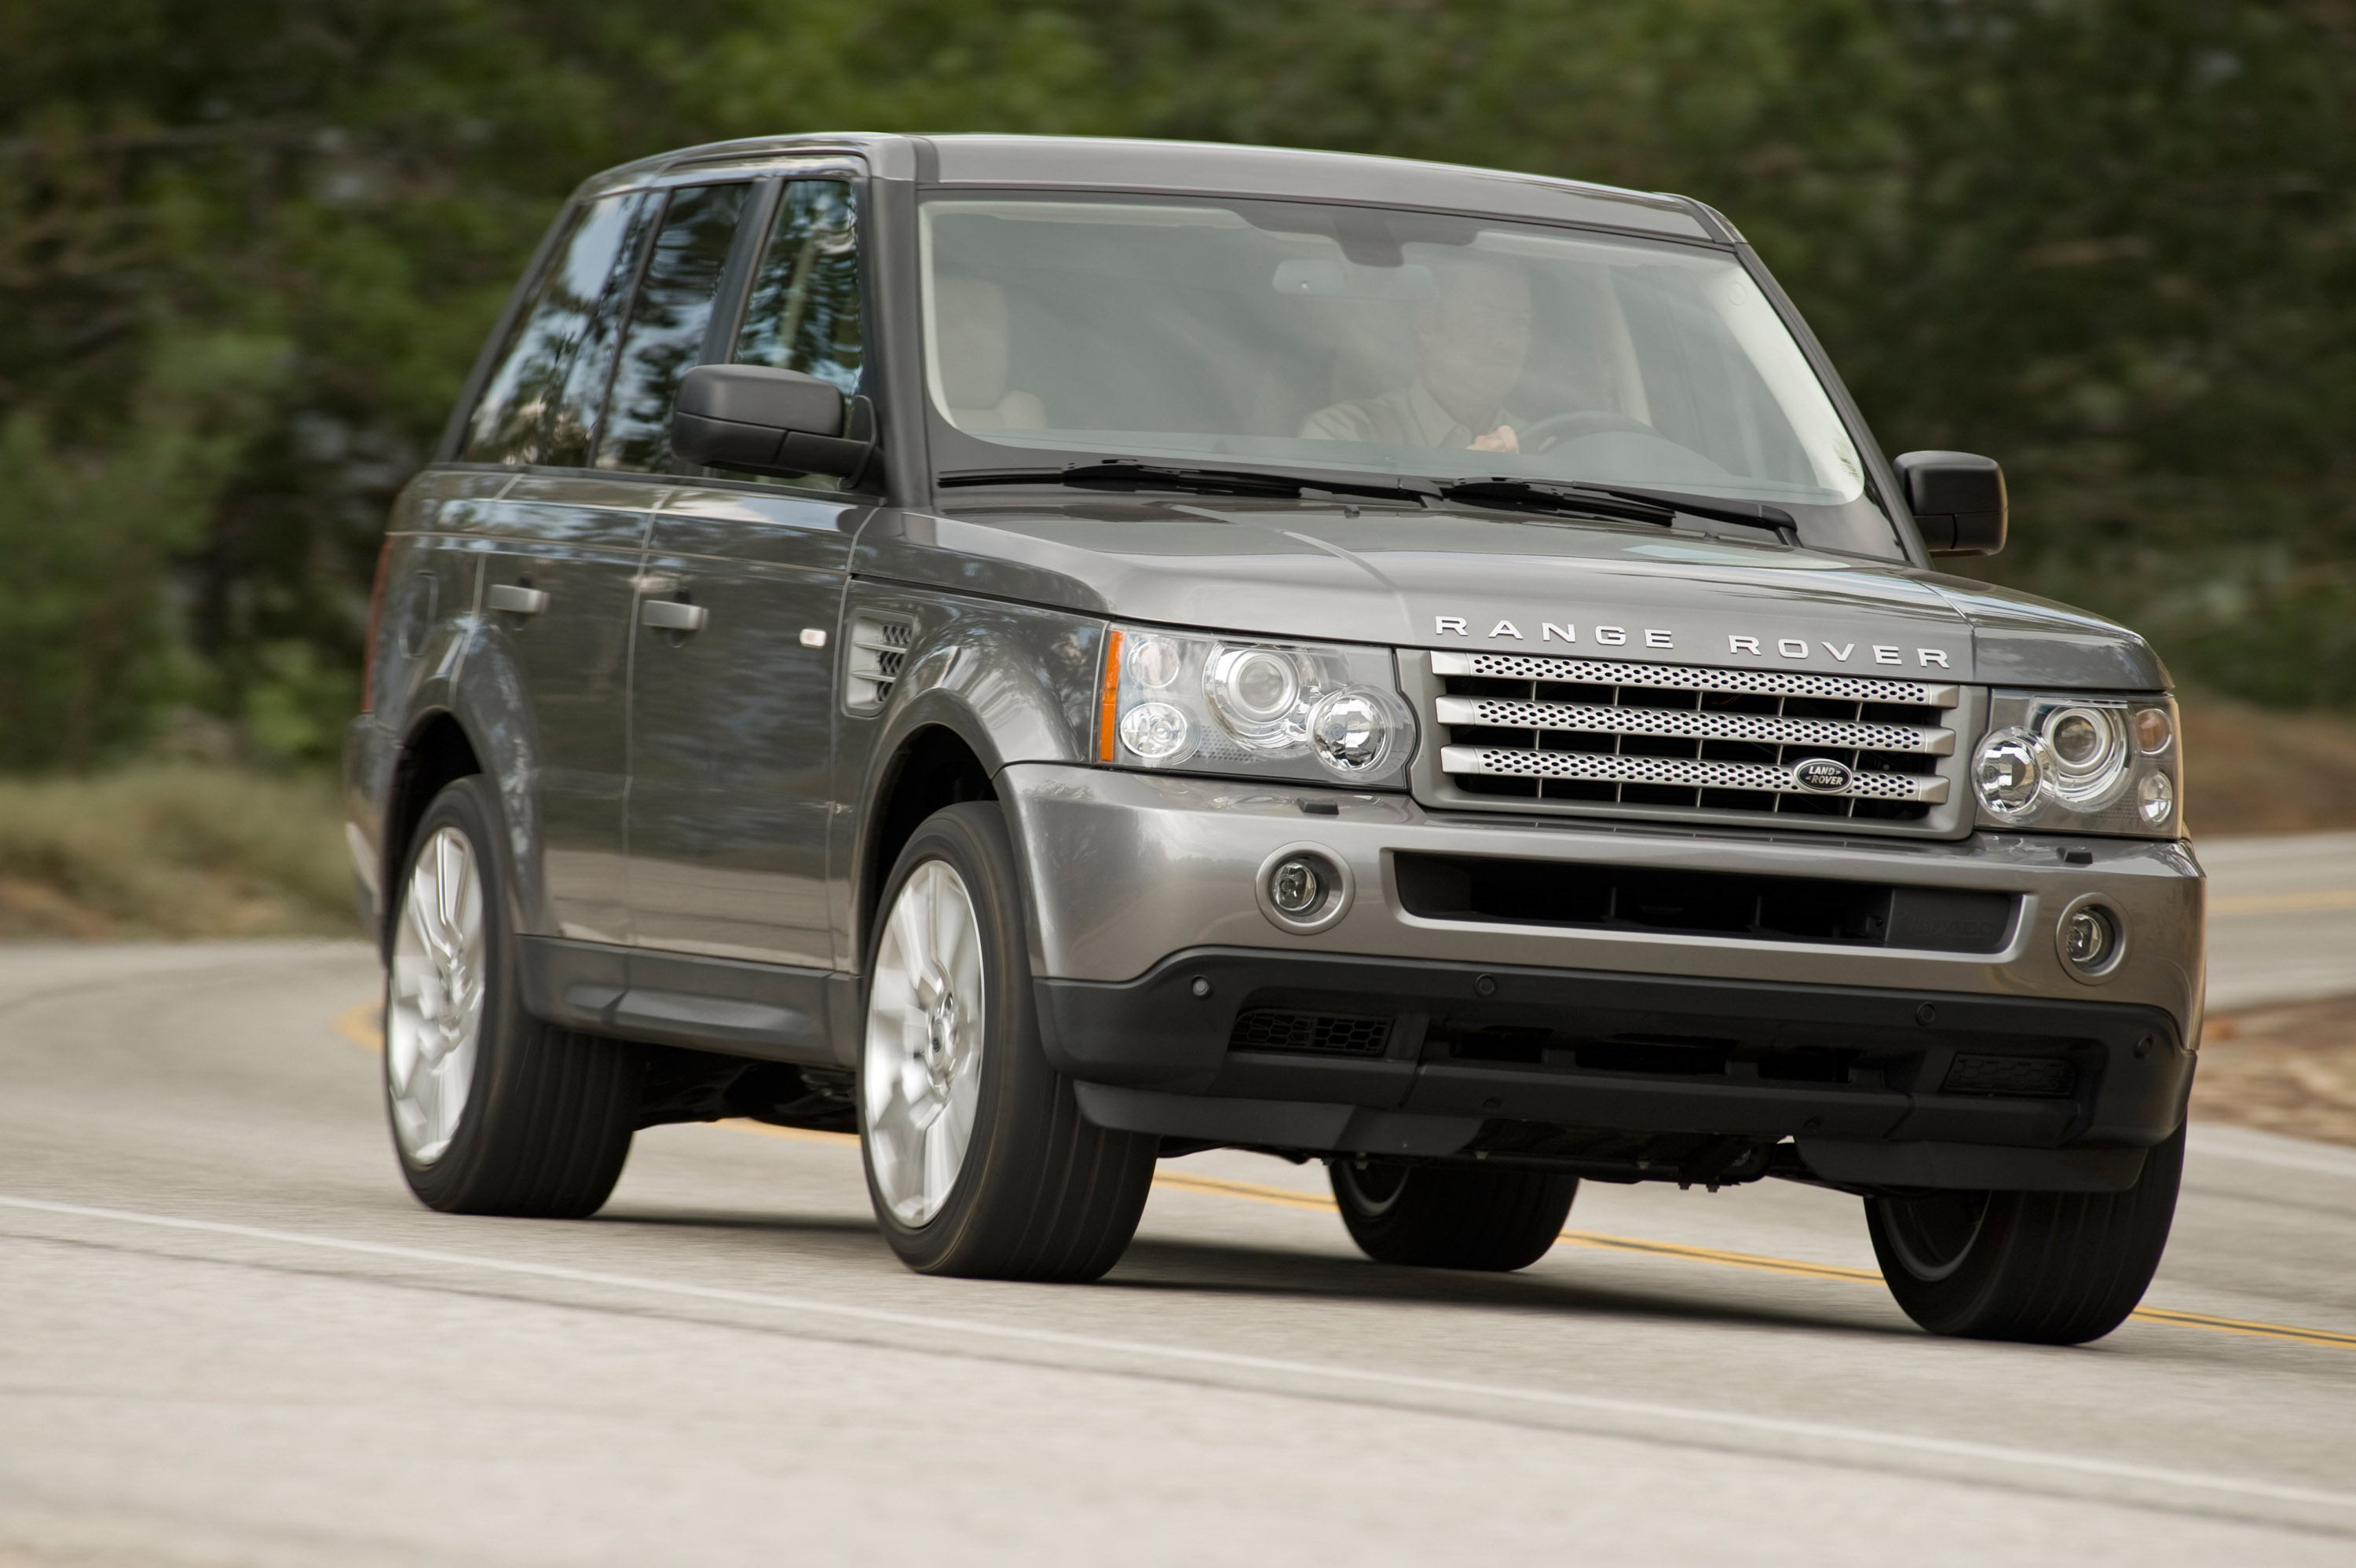 fresh 2008 range rover sport specs honda civic and accord gallery honda civic and accord gallery. Black Bedroom Furniture Sets. Home Design Ideas